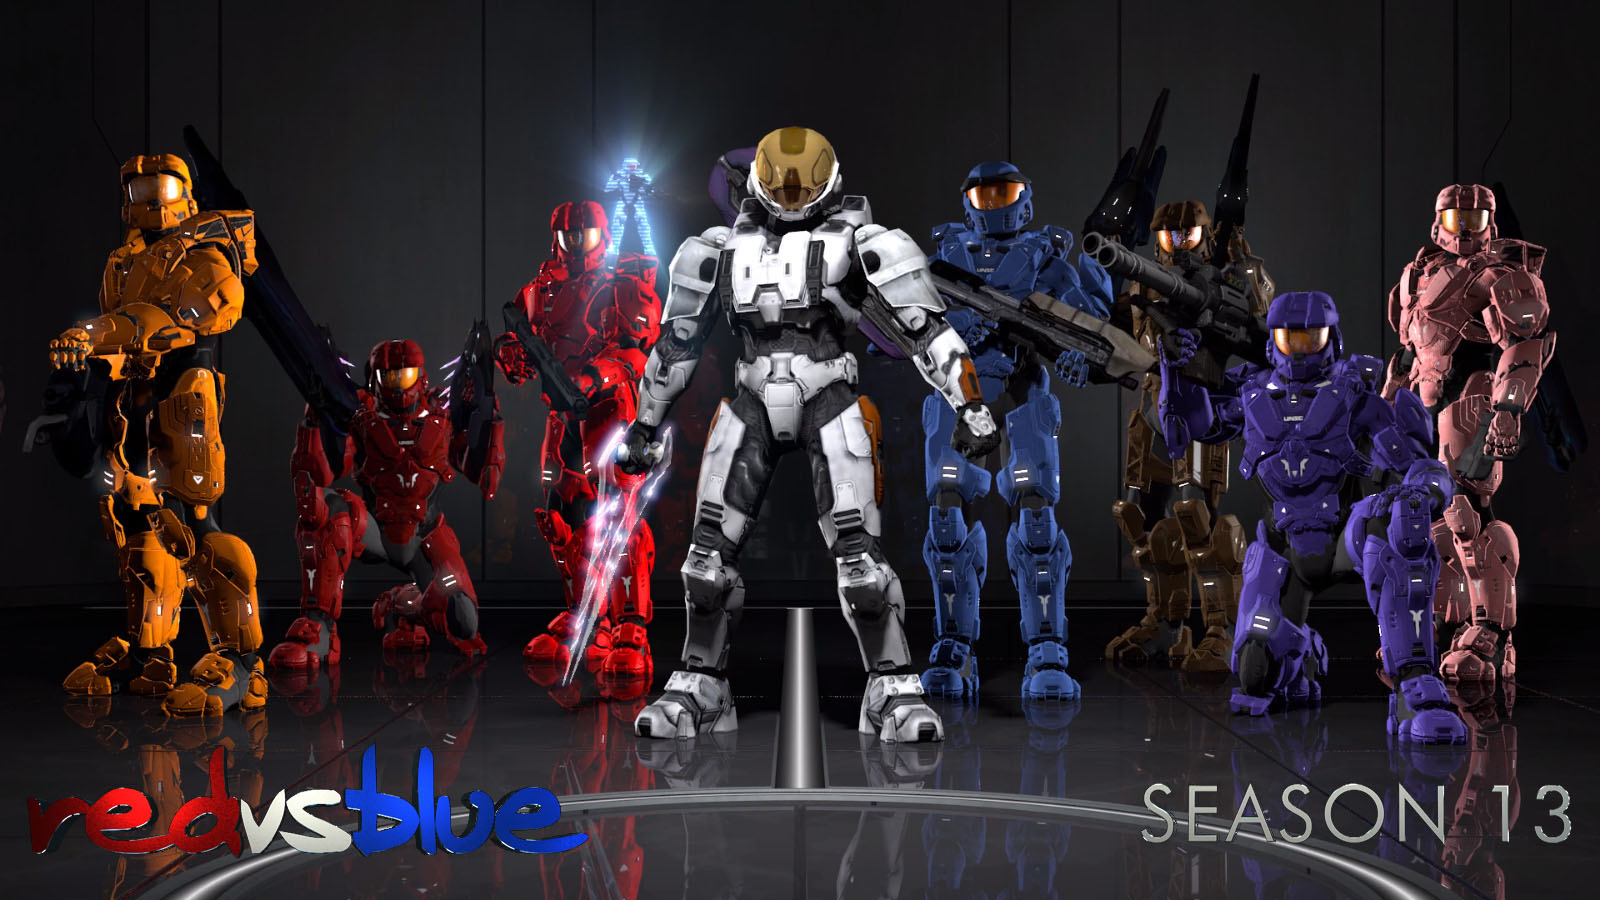 Red vs blue backgrounds   SF Wallpaper 1600x900